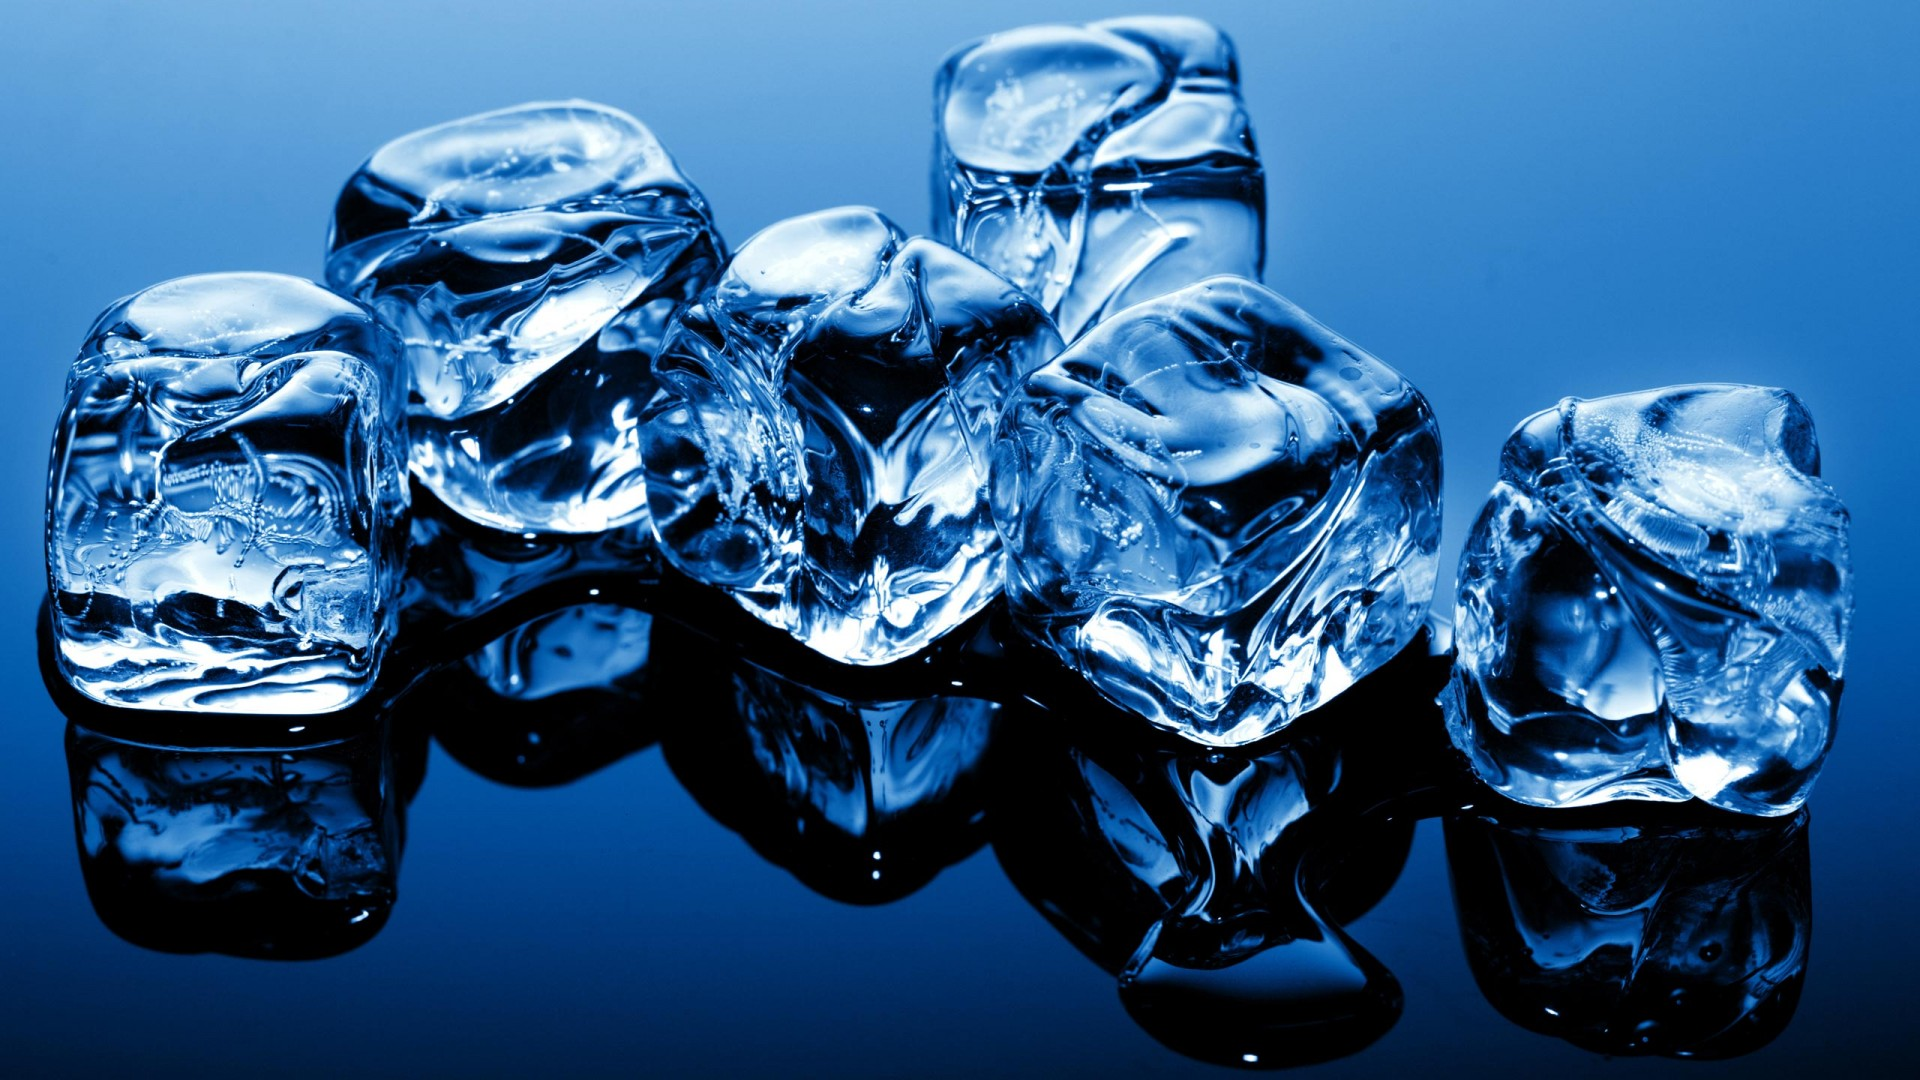 Blue Ice Cubes HD Wallpaper   MixHD wallpapers 1920x1080